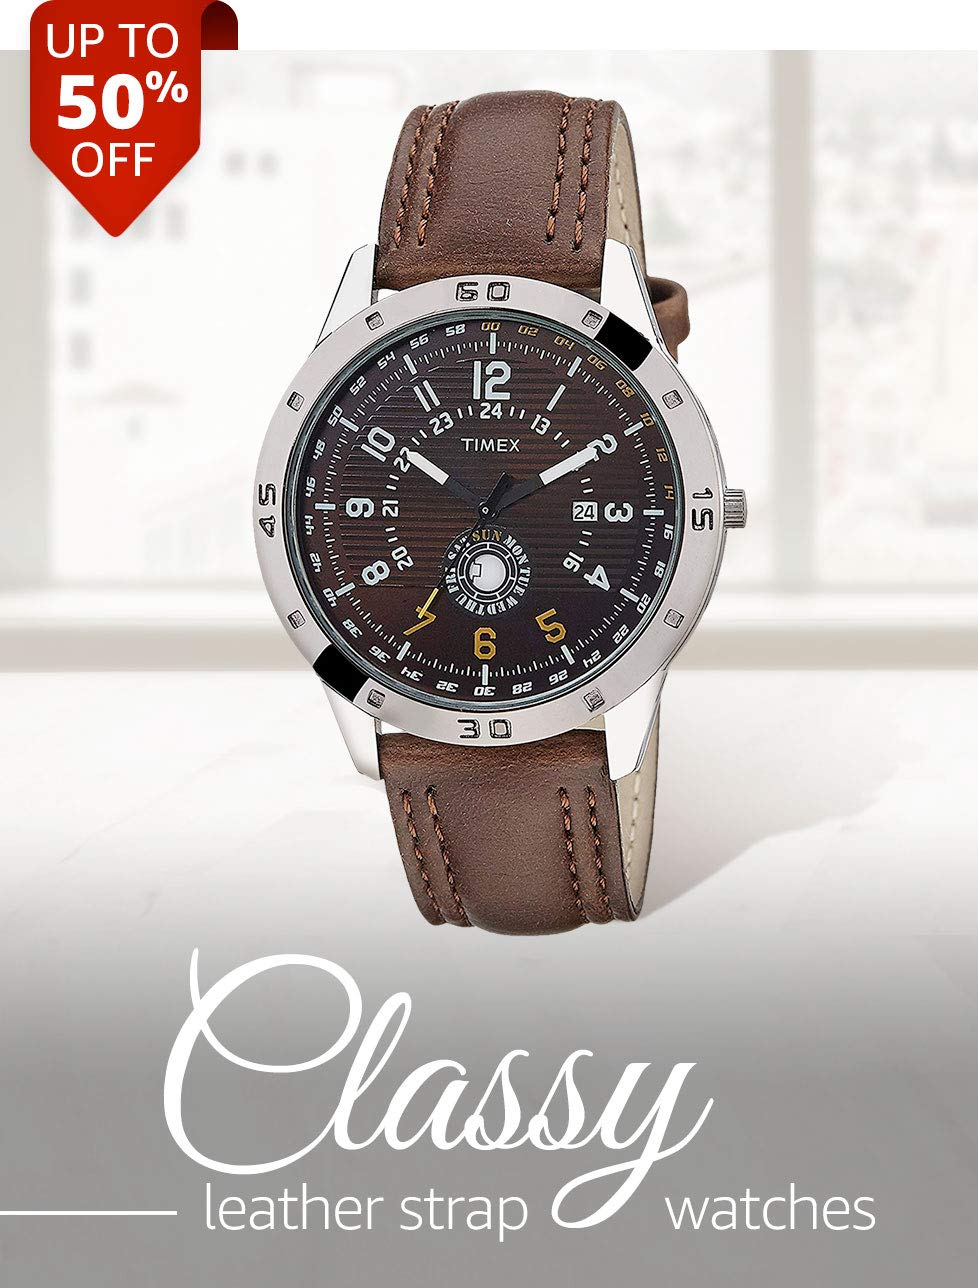 Classy Leather Strap Watches